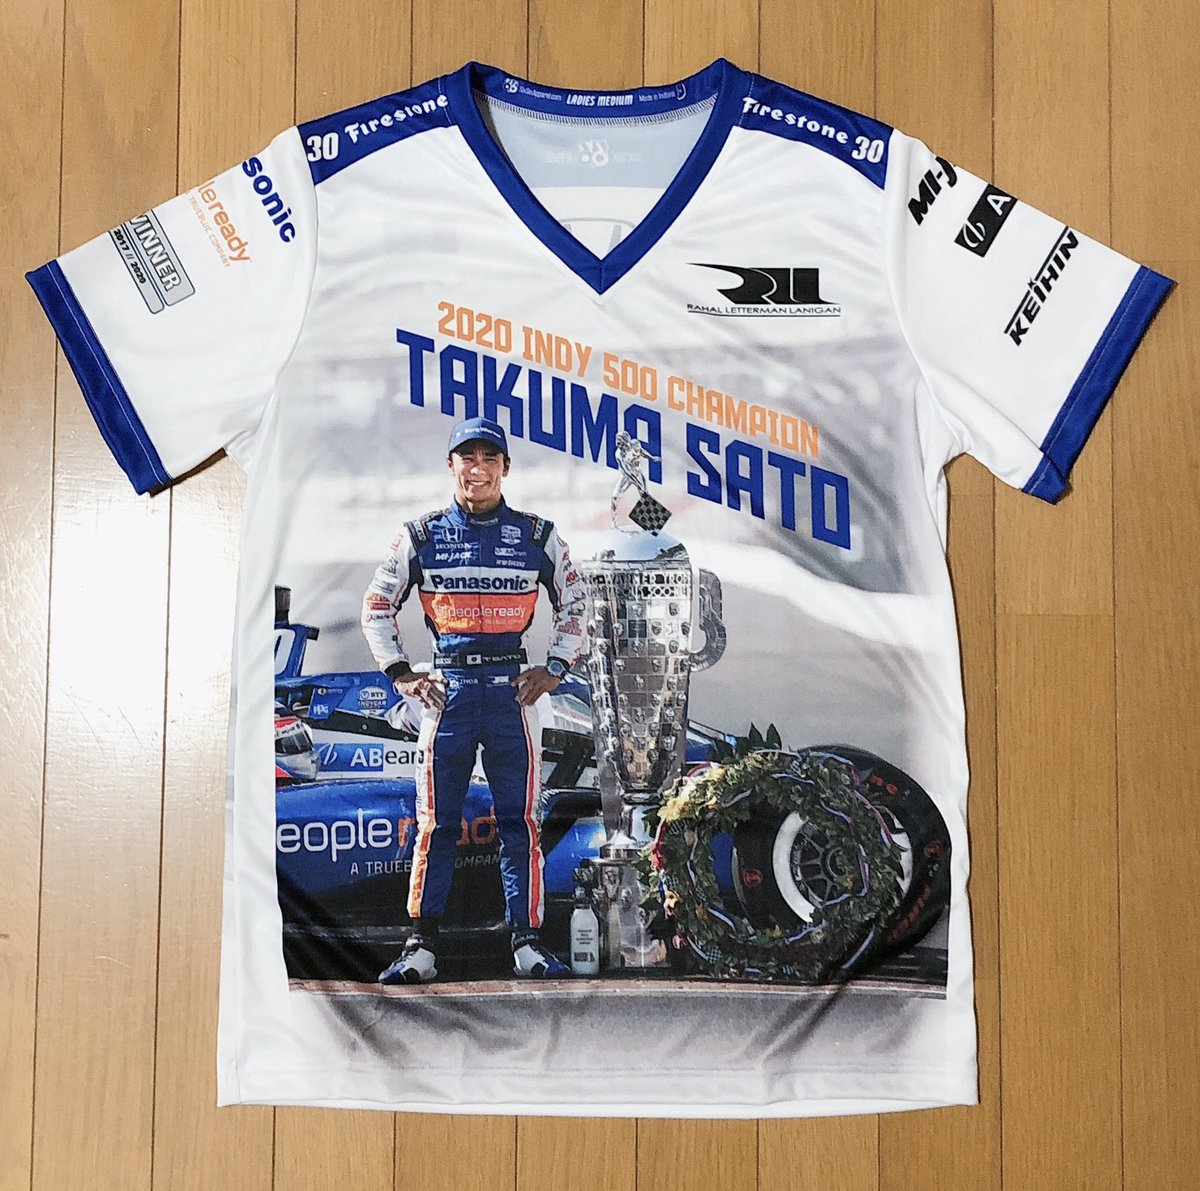 I bought it quickly.  And T-shirts have been sent from America to Japan today. This is a happy and wonderful T-shirt.  And Takuma-san, 🇯🇵really congratulations.  He is really great.👏🙌 #佐藤琢磨 #Takumasato https://t.co/irkJWnrdWp https://t.co/qnWP8IhpGd